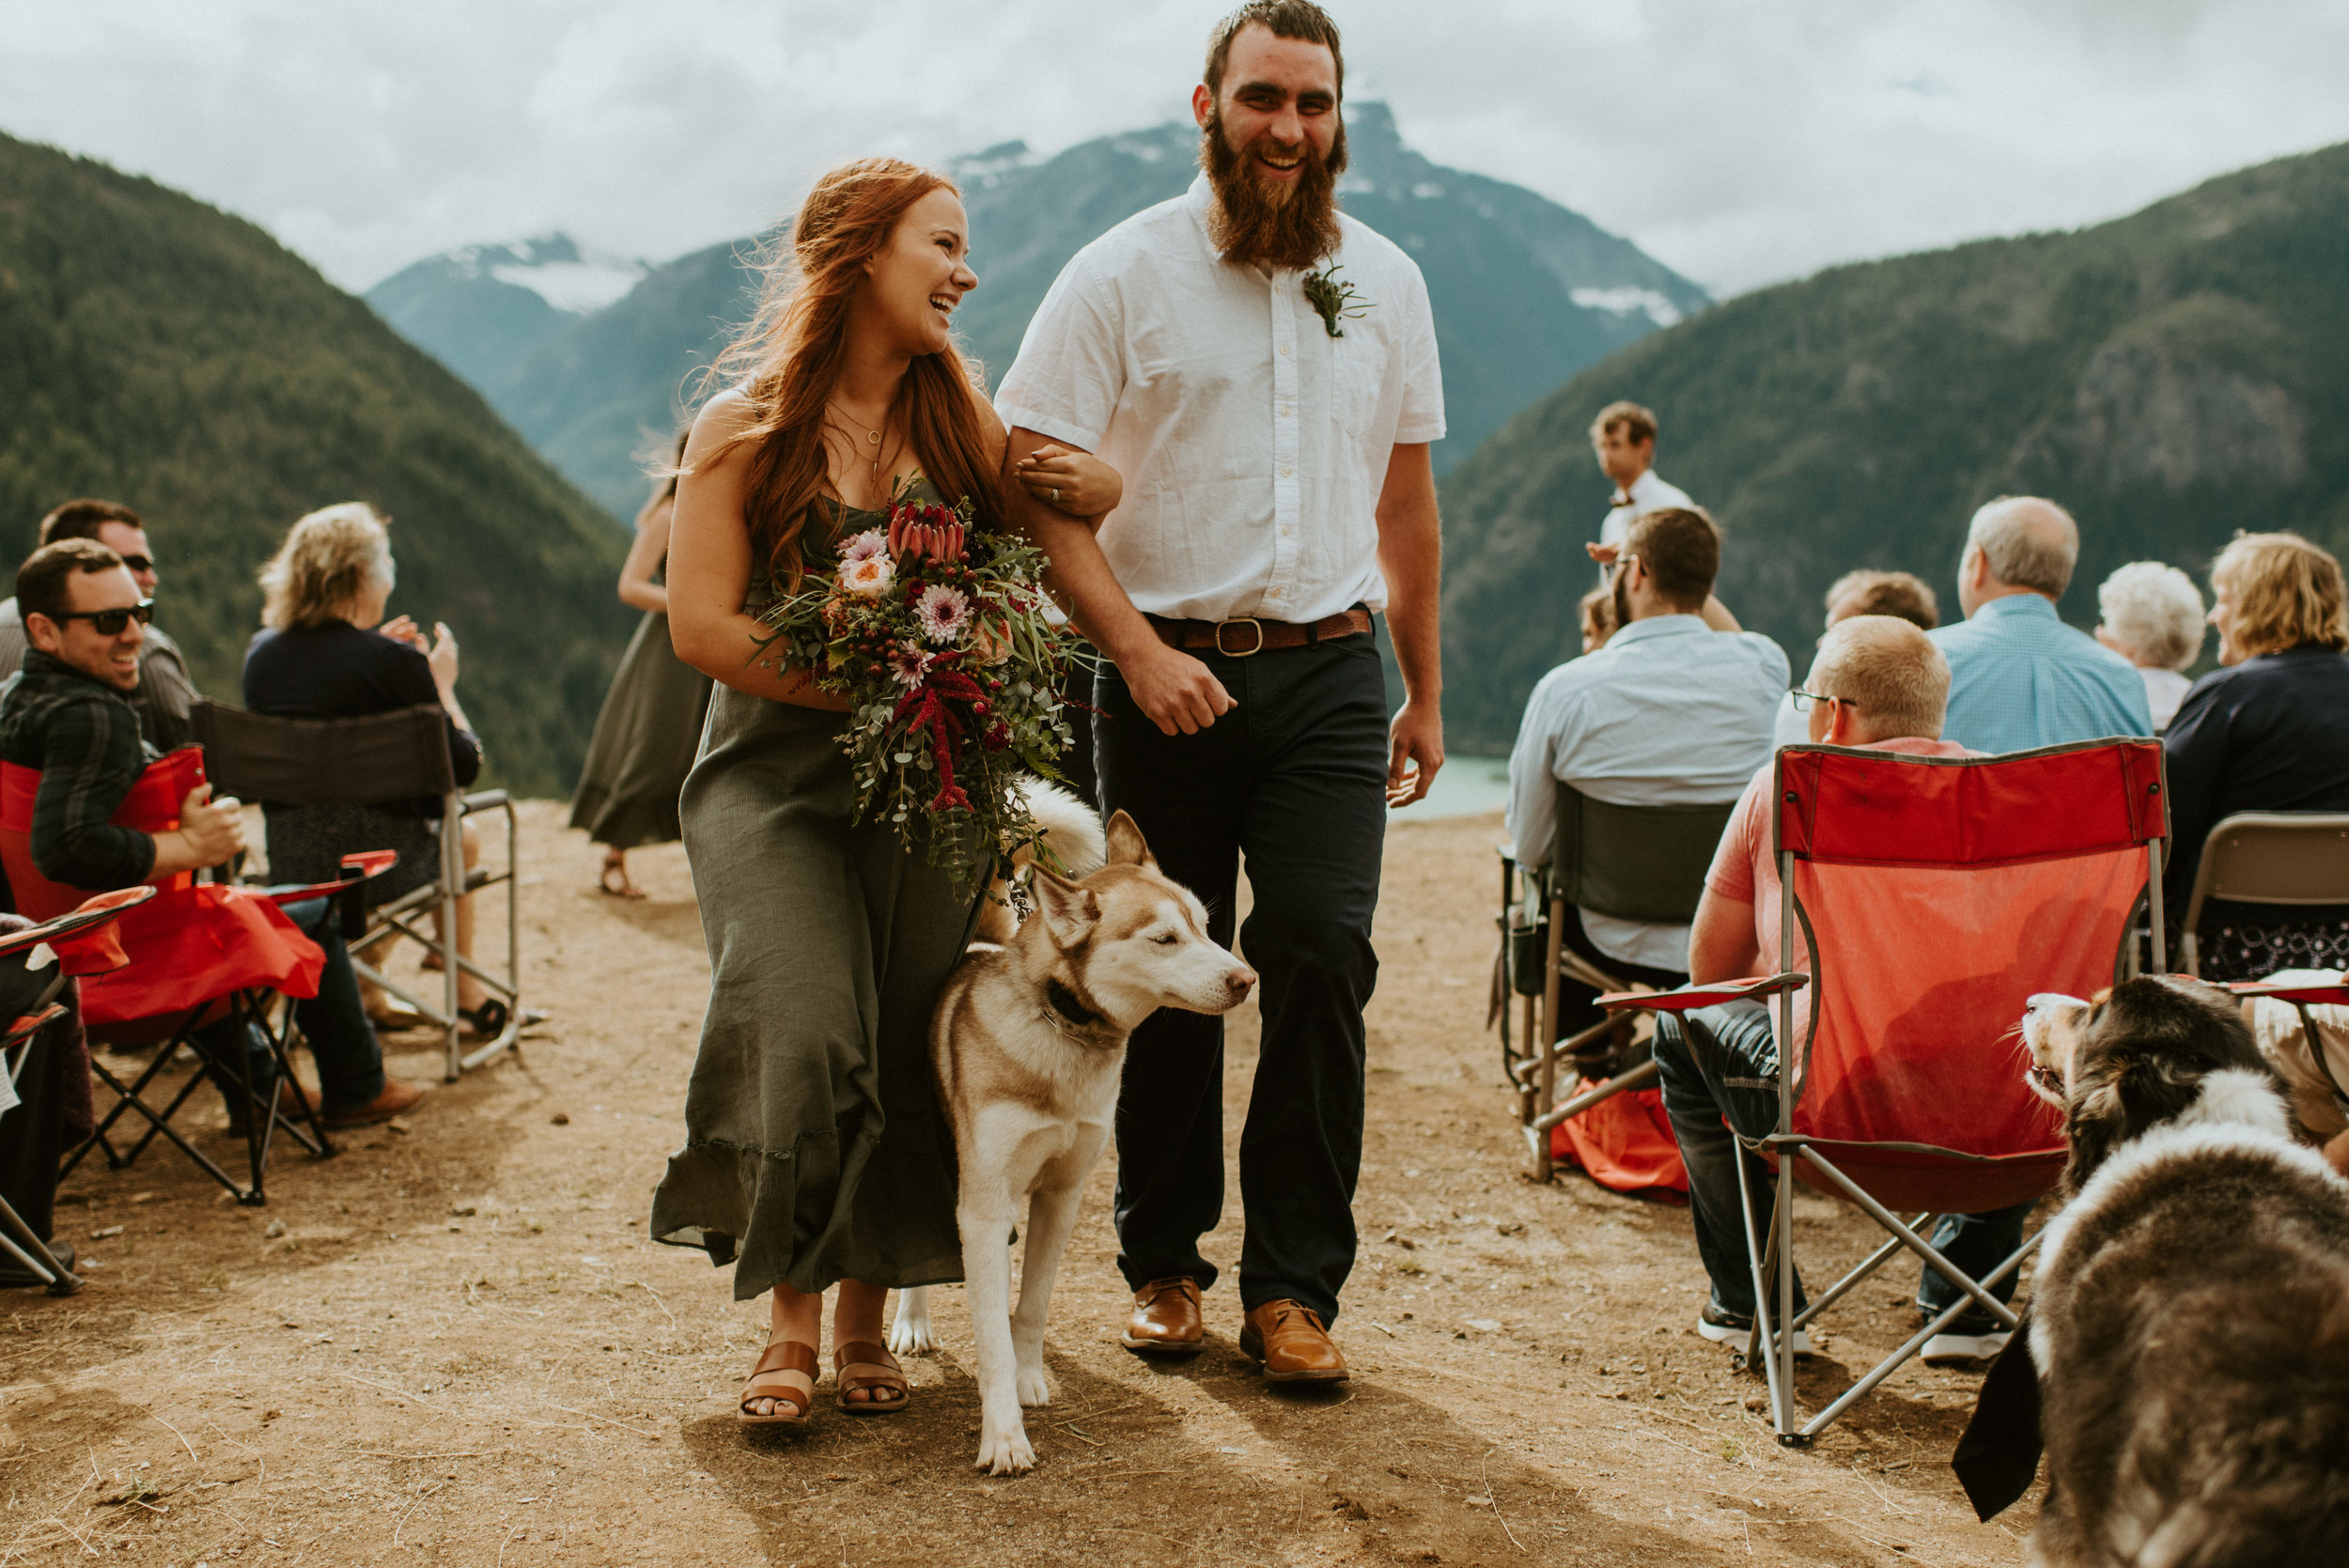 Kelsea + Perry - Diablo Lake Elopement - Kamra Fuller Photography - Seattle Elopement Photographer - North Cascades Elopement Photographer - Mt. Baker Wedding Photographer